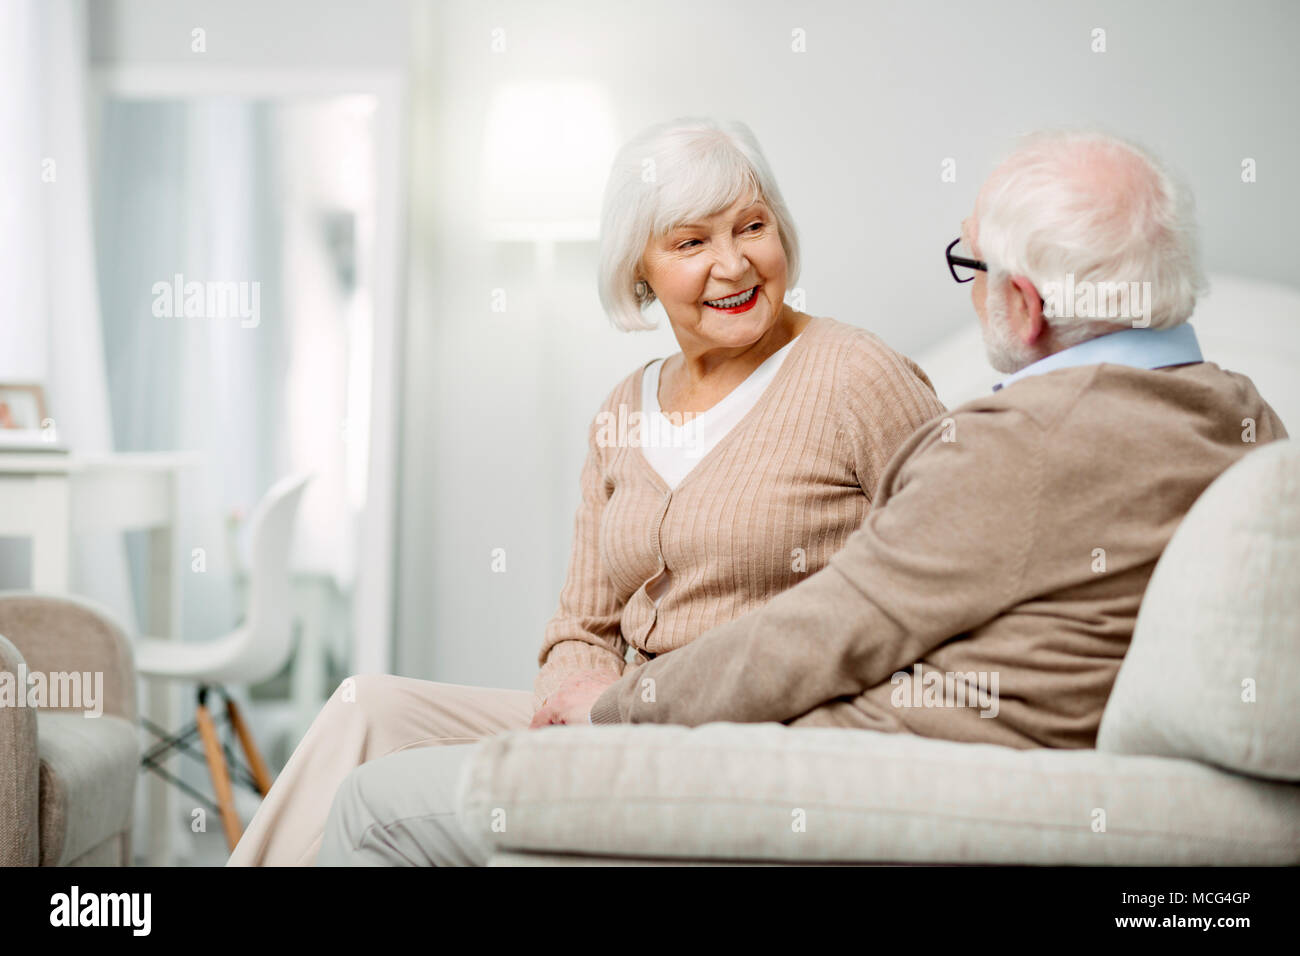 Delighted aged woman looking at her husband - Stock Image